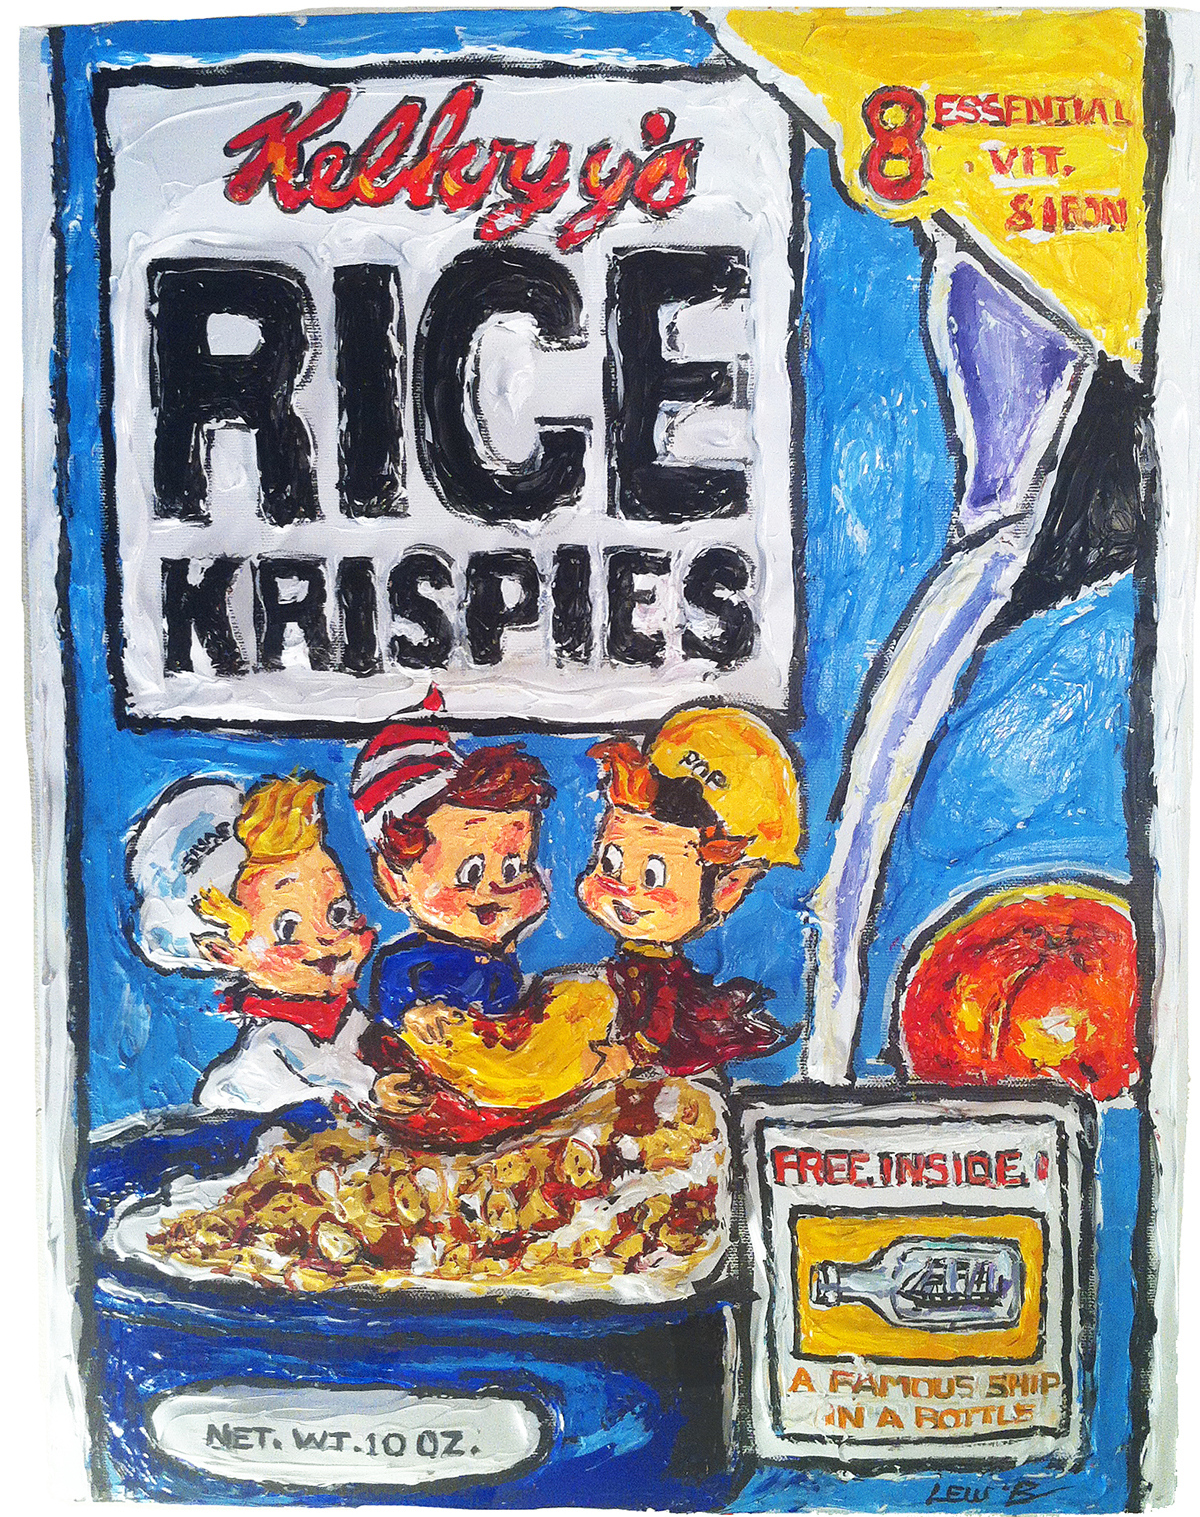 Leslie Lew, Rice Krispies, Sculpted Acrylic Monotype on Canvas, 12 x 9 x 1 3/4 inches, 2013, Courtesy of ArtSpace/Virginia Miller Galleries, Coral Gables (Miami), Florida